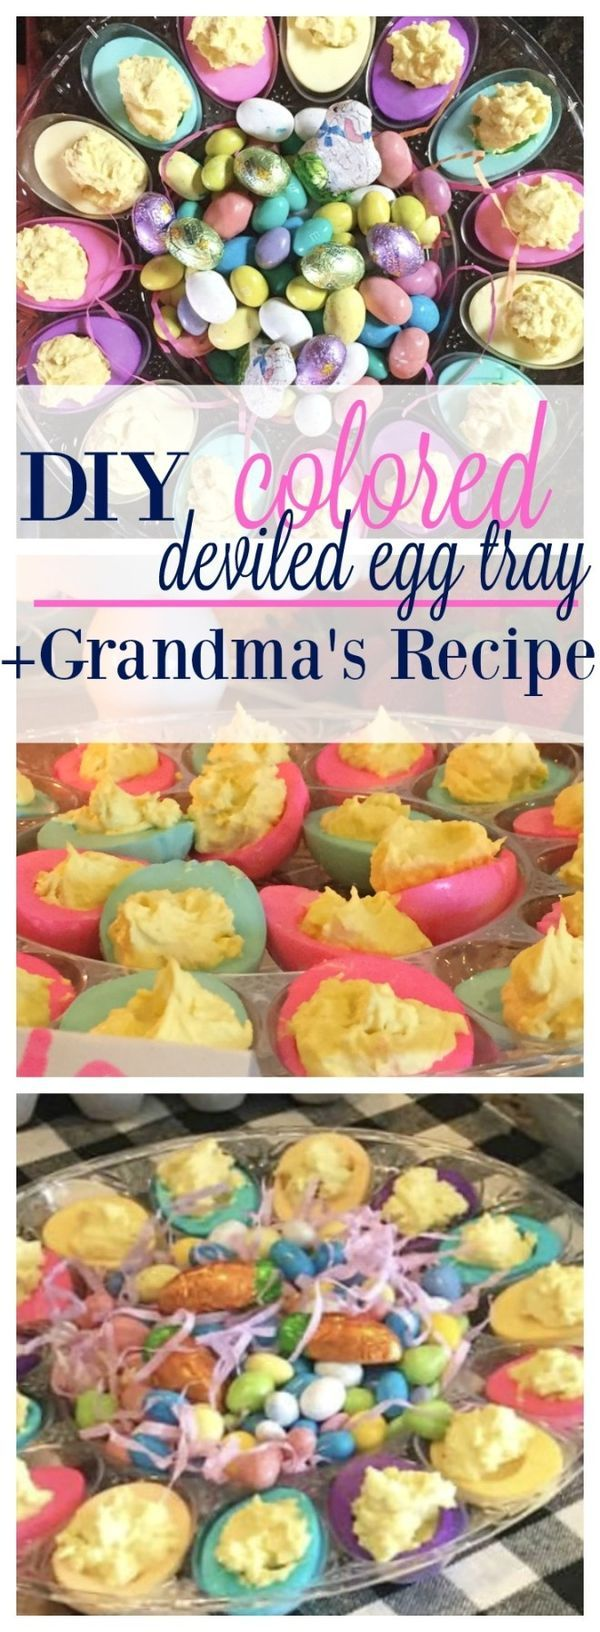 DIY Colored Deviled Egg Tray for Easter + Grandma's Deviled Egg Recipe